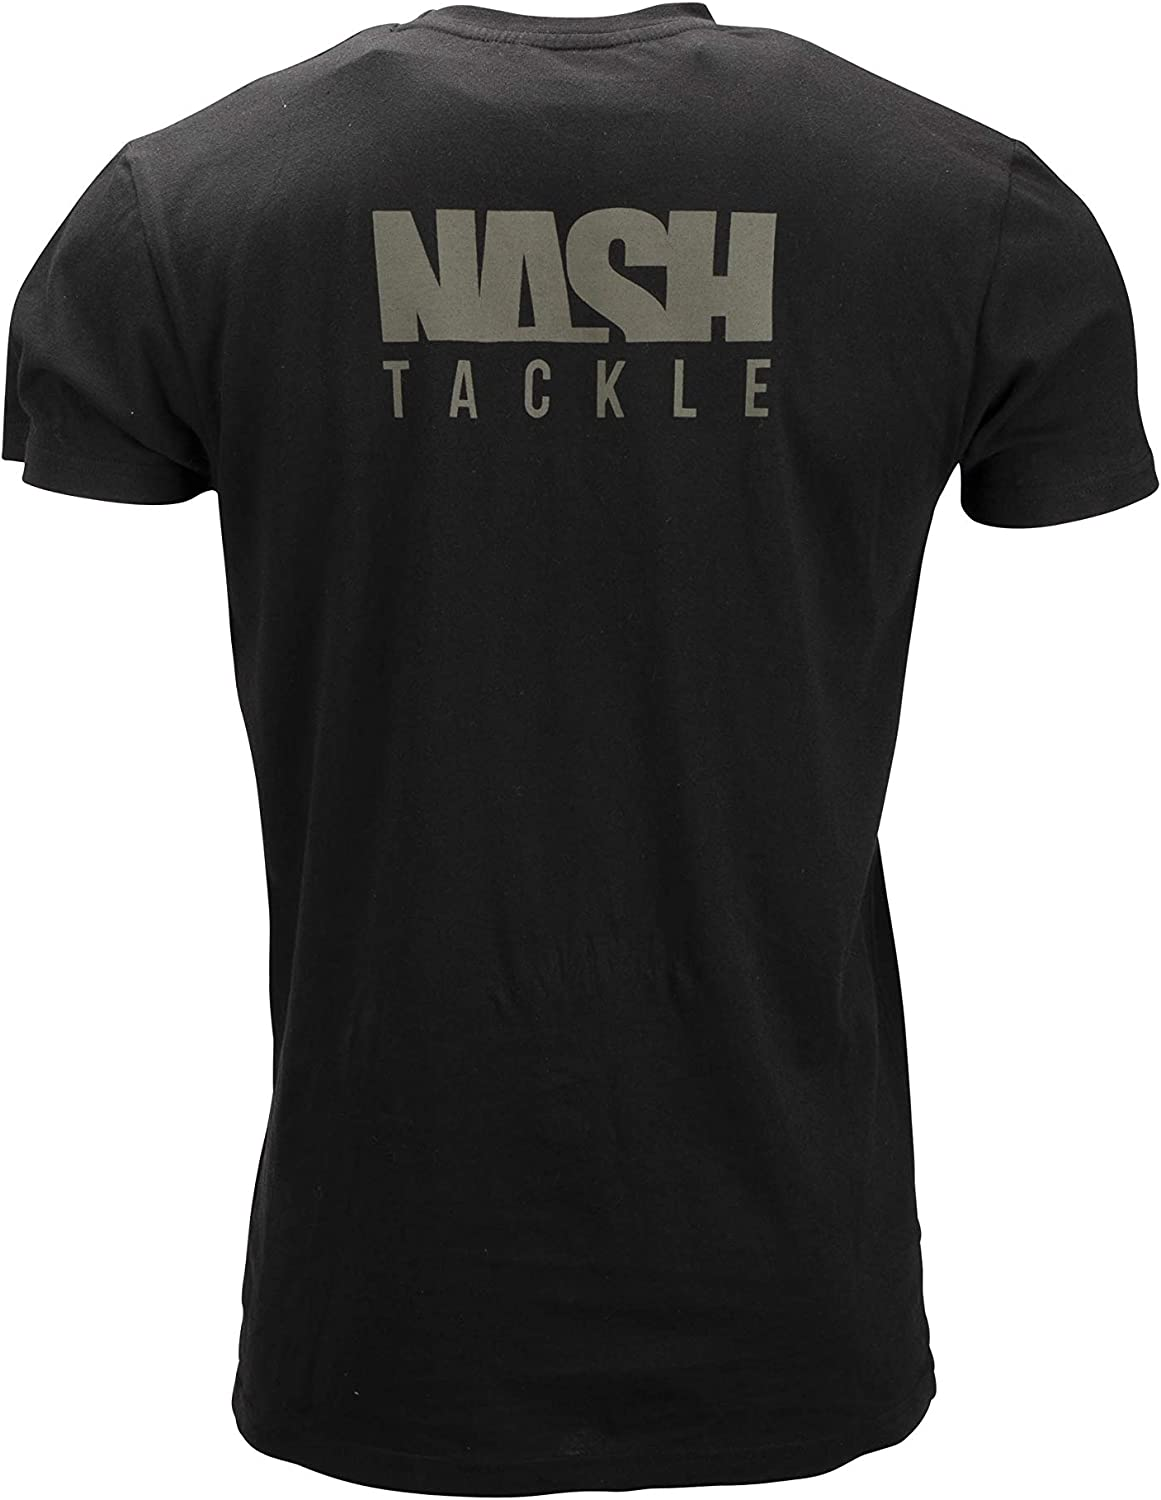 Nash Tackle T-Shirt Green Groesse M